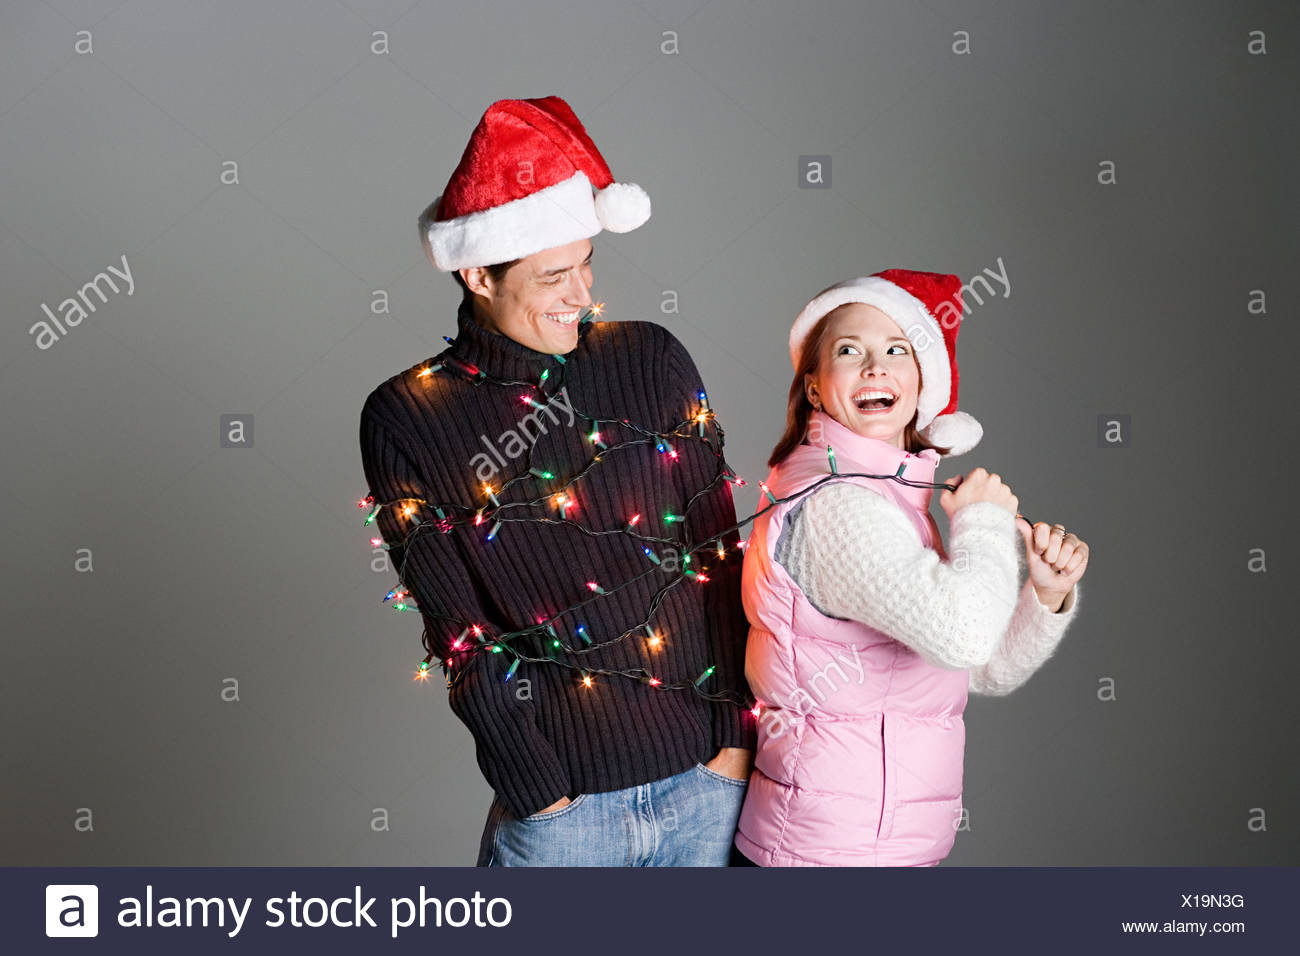 Woman pulling man tied up in christmas lights - Stock Image